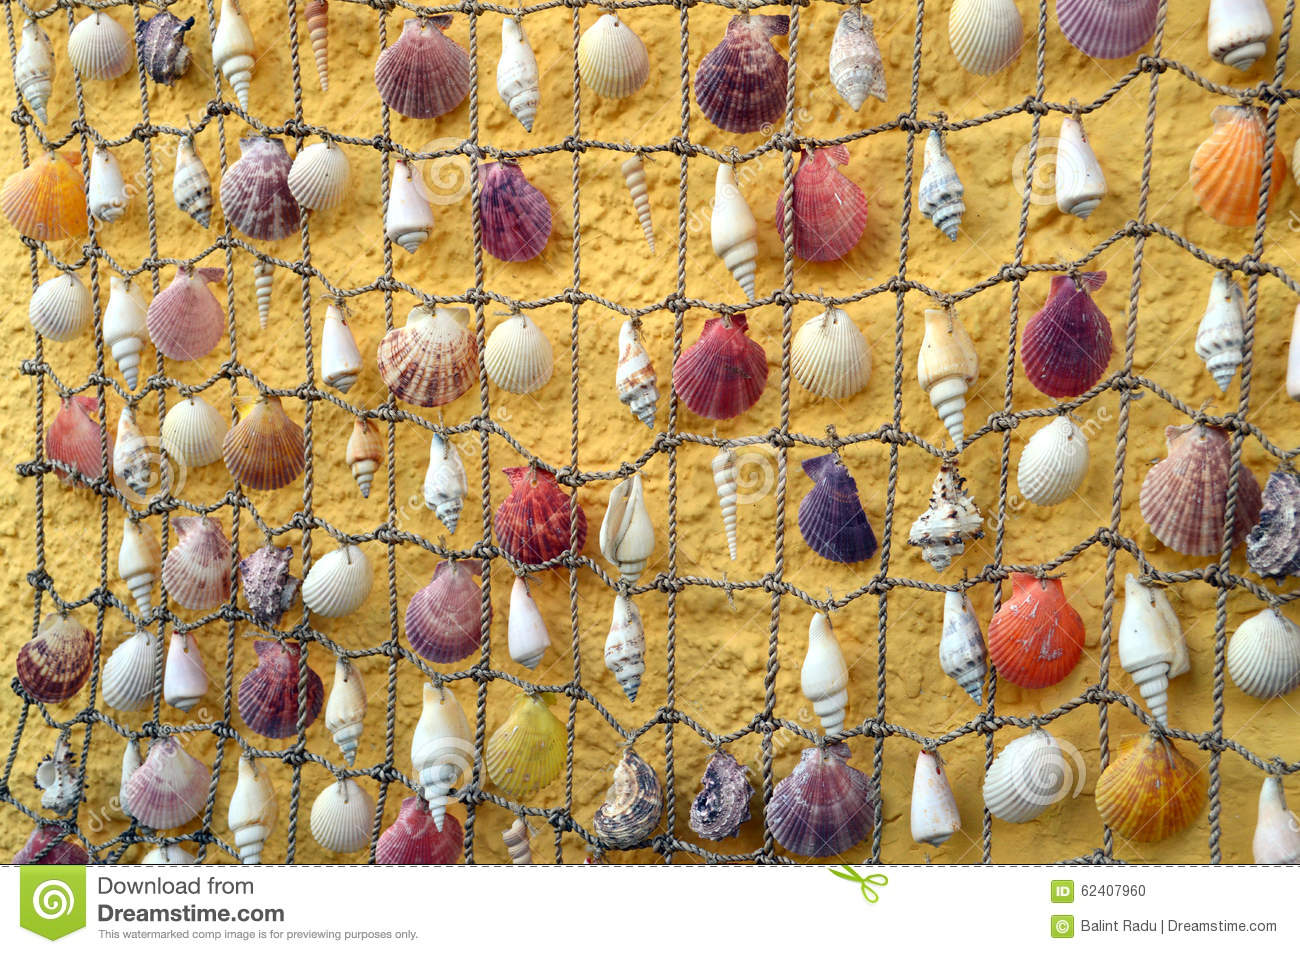 Shells hanging on the rope stock photo. Image of sand - 62407960